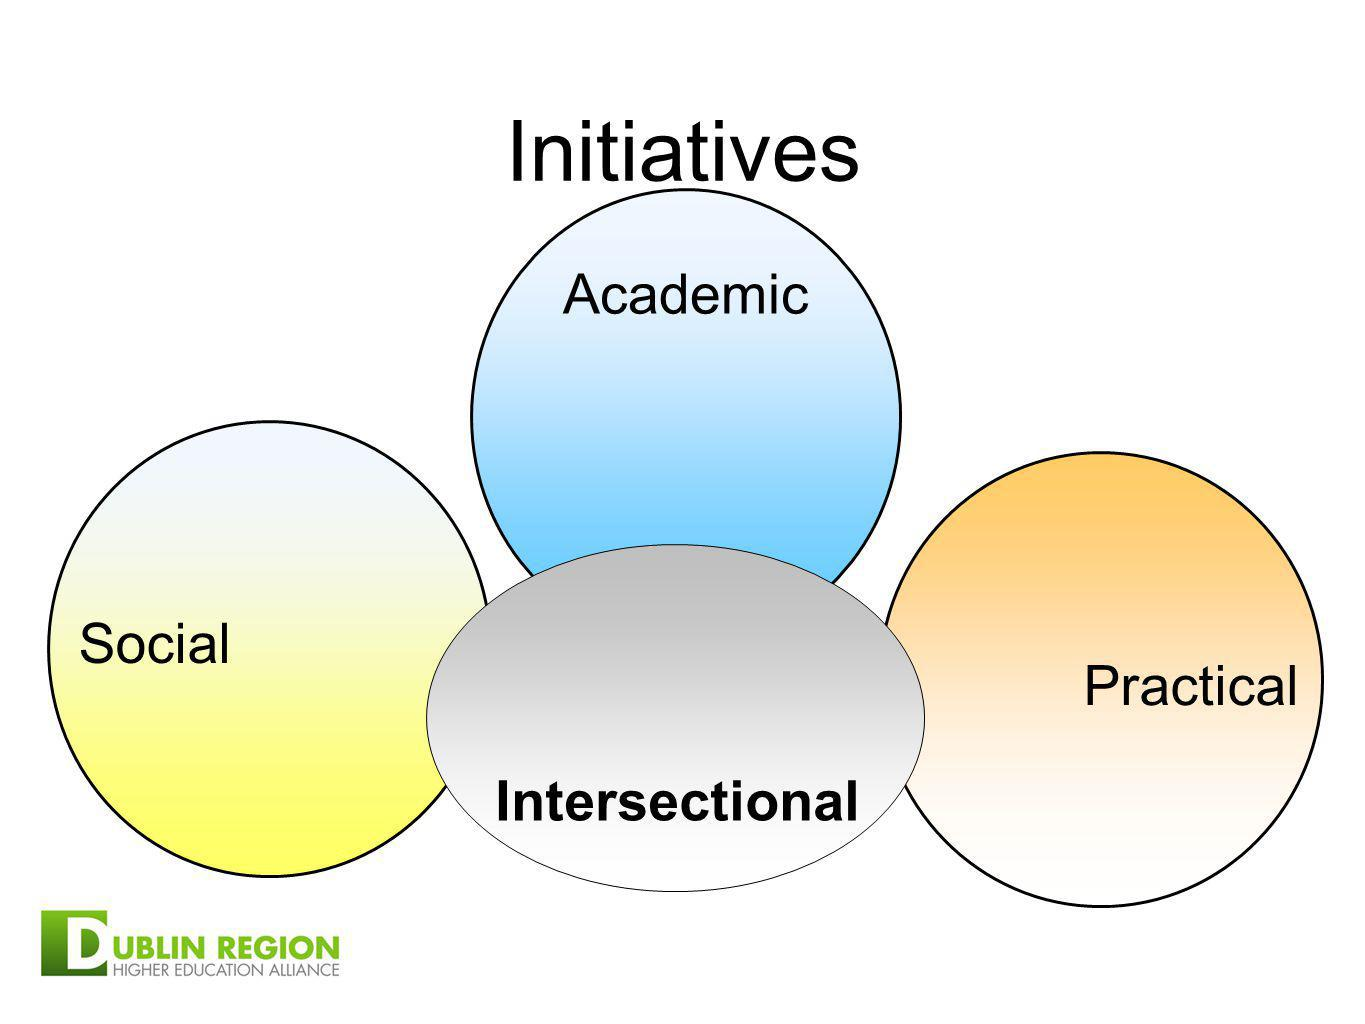 Academic Social Practical Initiatives Intersectional